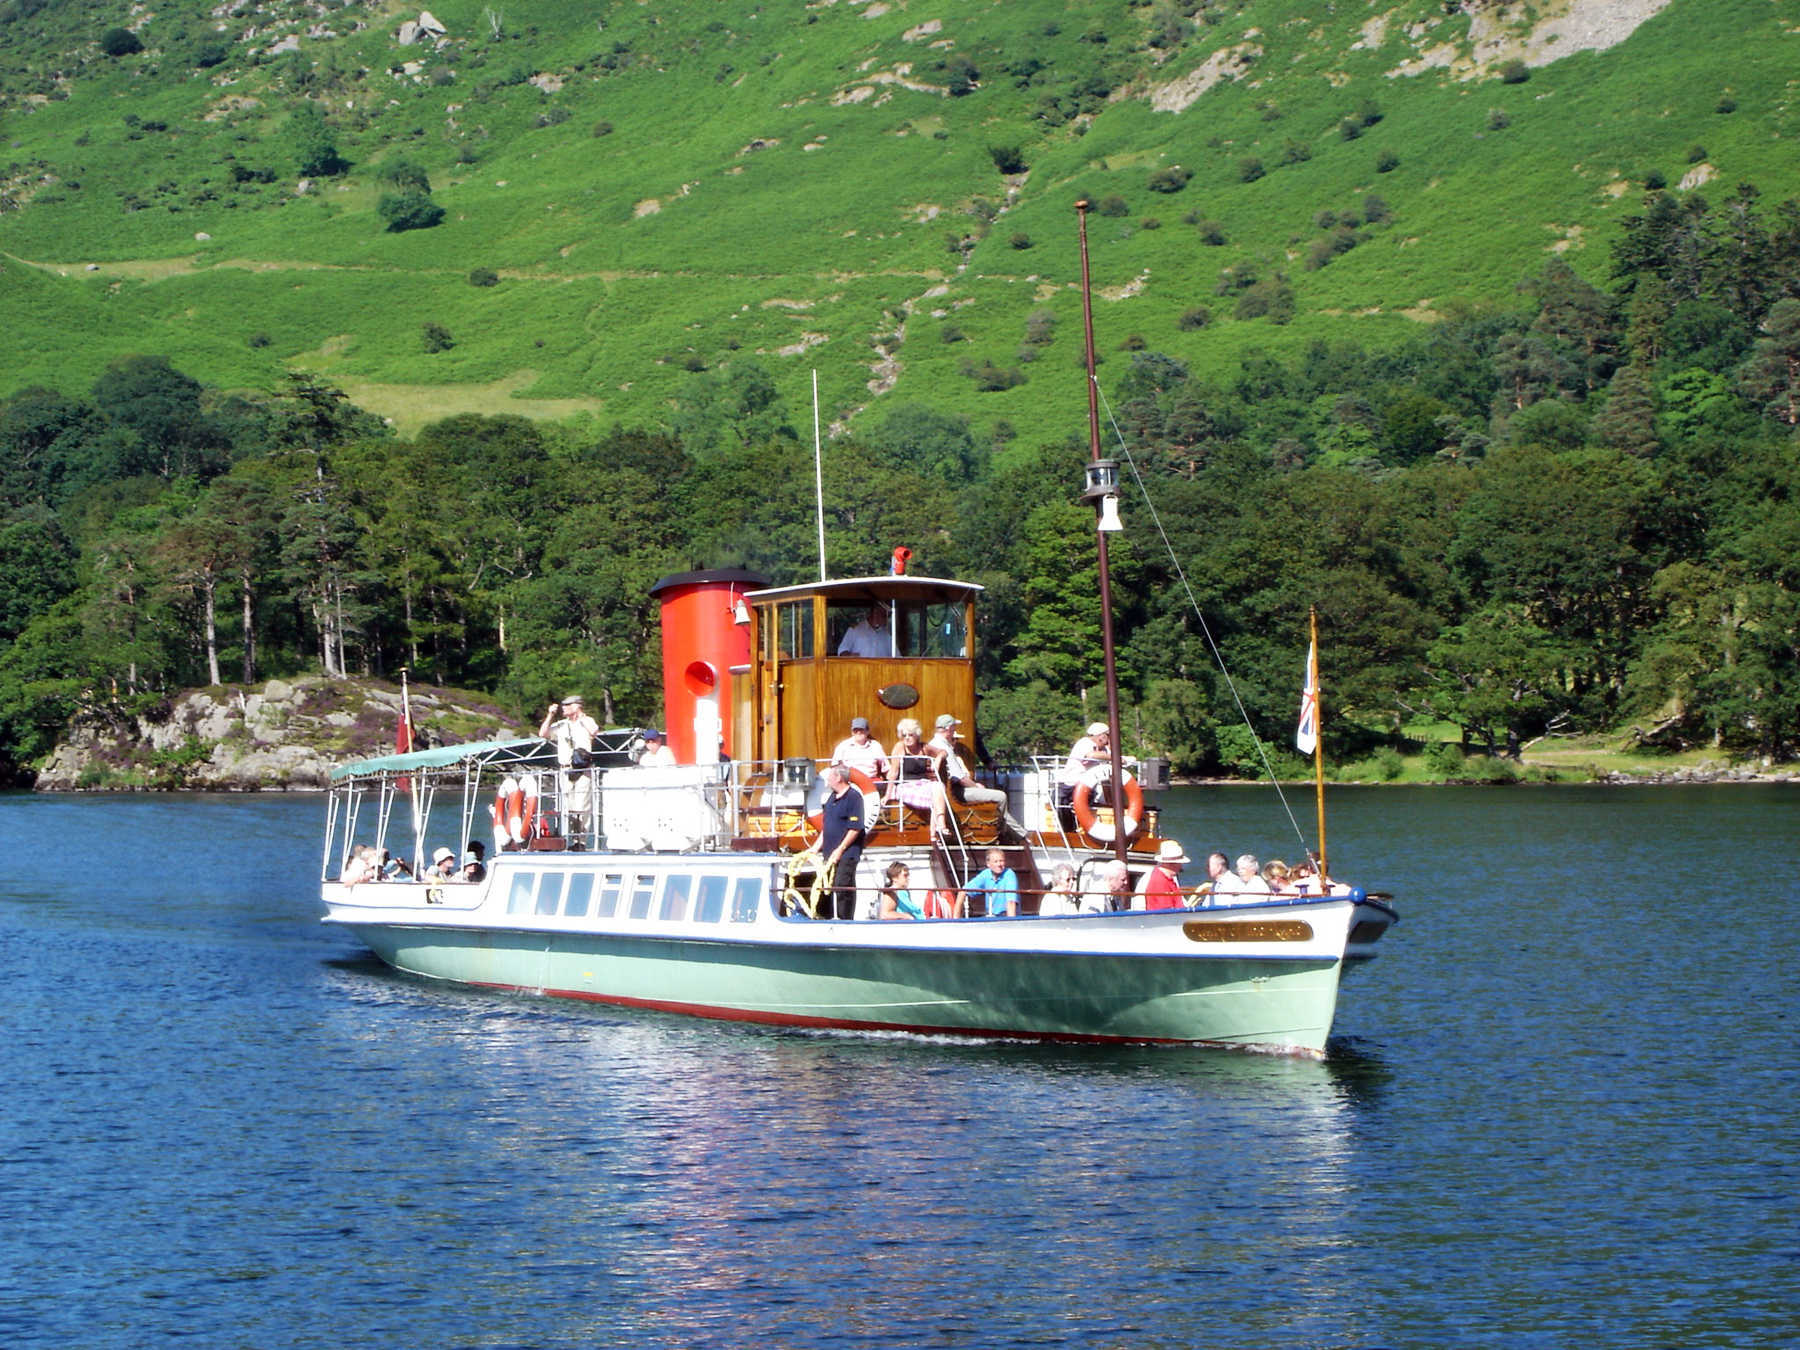 Boat on Lake Ullswater, Keswick, Lake District, England